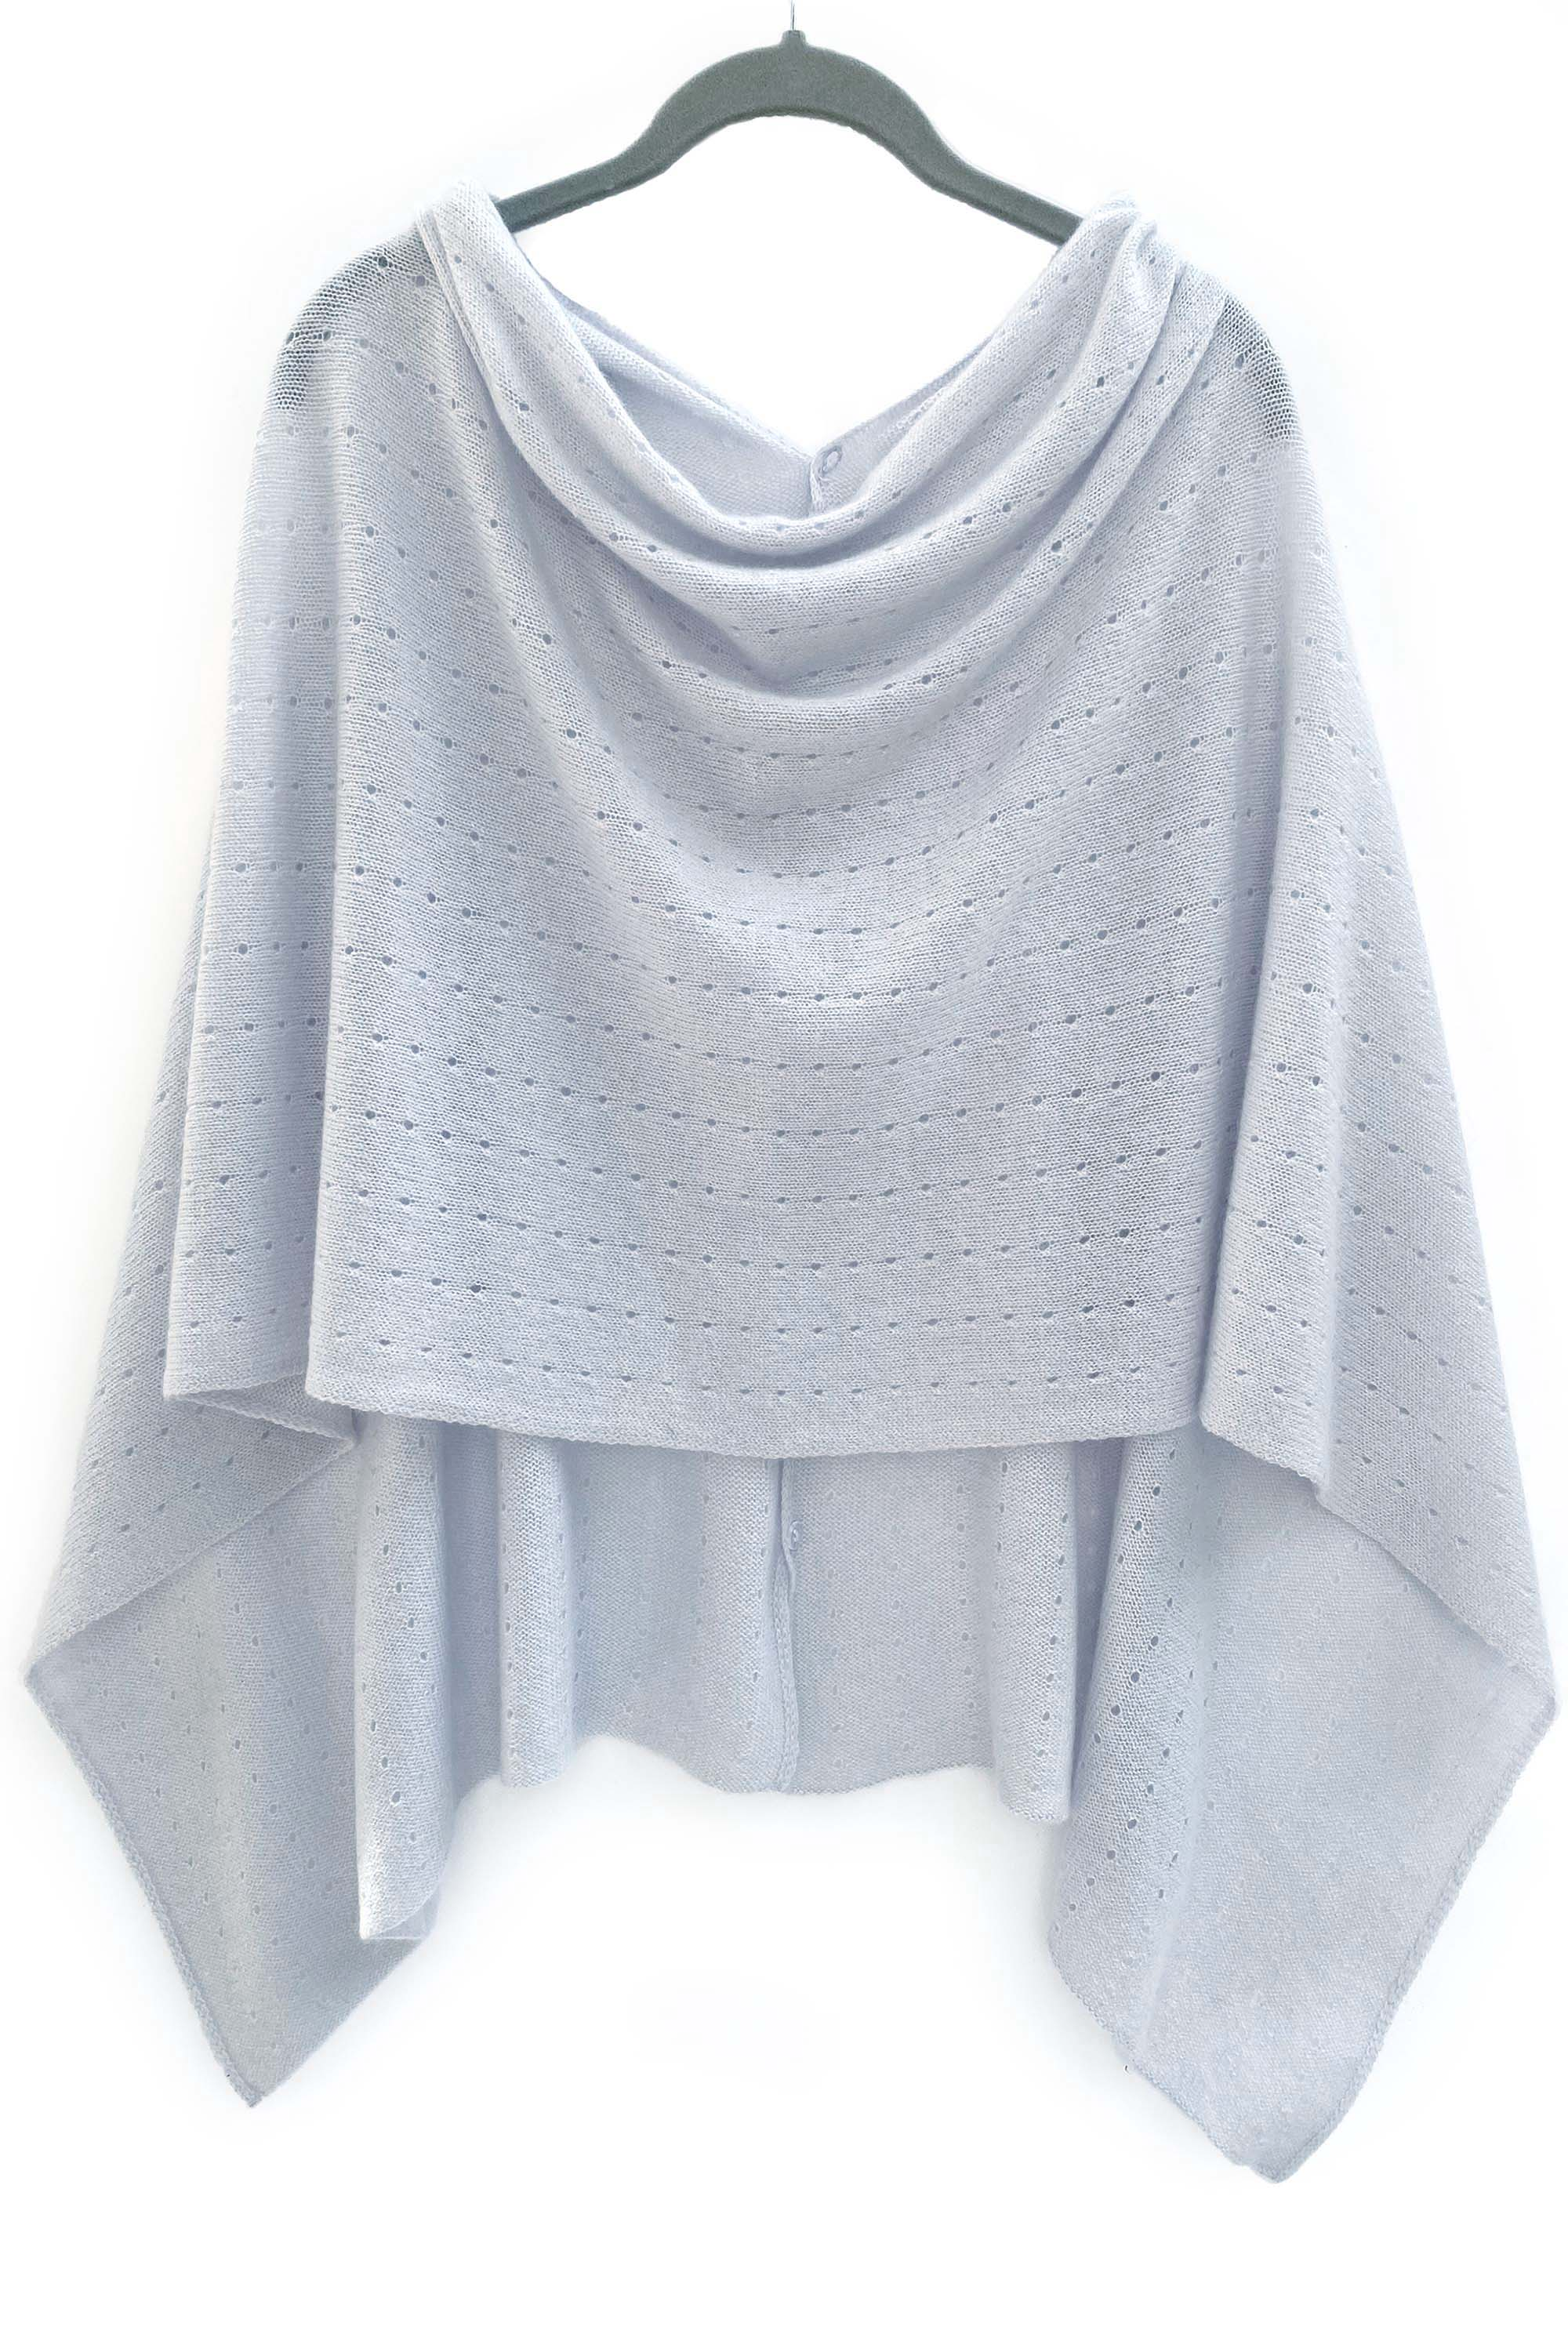 Pale blue Cashmere Poncho UK Women damen Wrap Cape Shawls Scarf shawl cardigan light weight ice blue poncho ladies small button poncho sweater sale anniversary gift wedding present| SEMON Cashmere